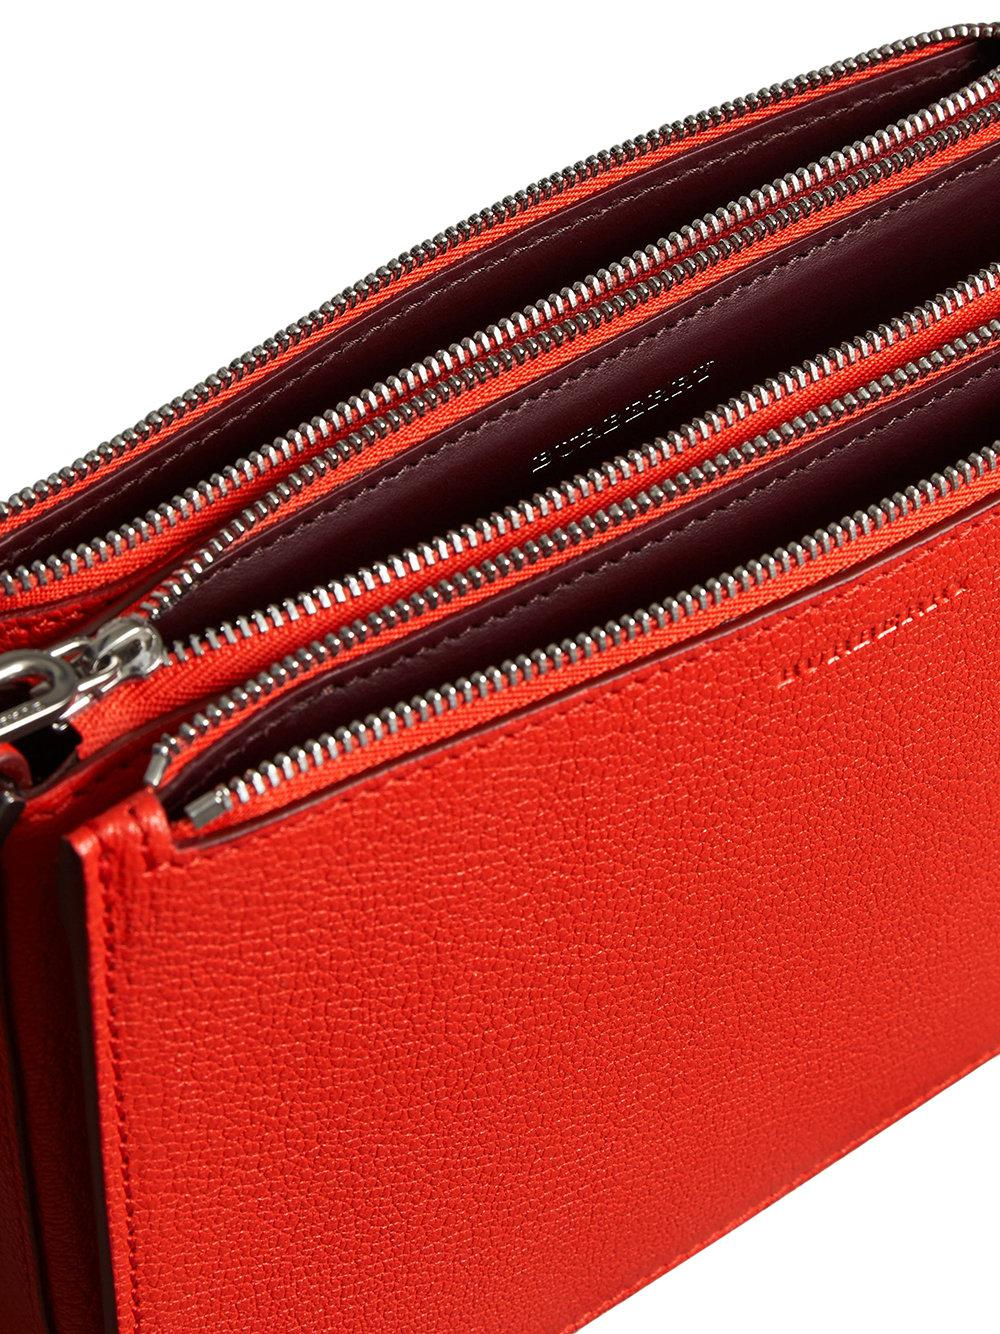 d0593f3dc7c7 Lyst - Burberry Triple Zip Grainy Leather Crossbody Bag in Red